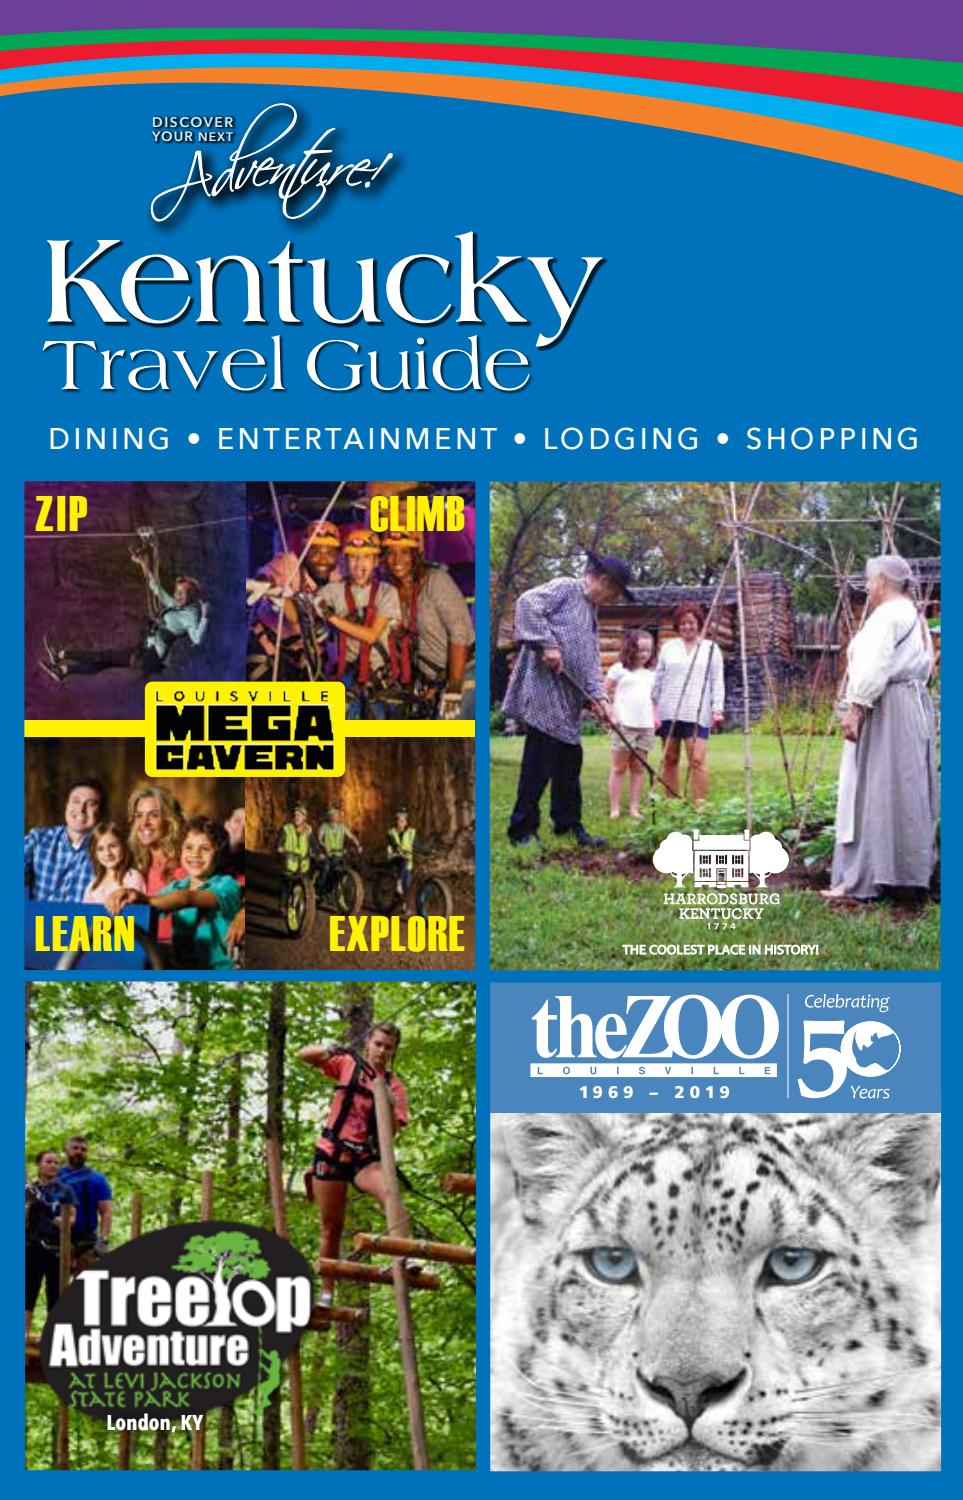 2019 Winter Edition of Kentucky Travel Guide by Kentucky